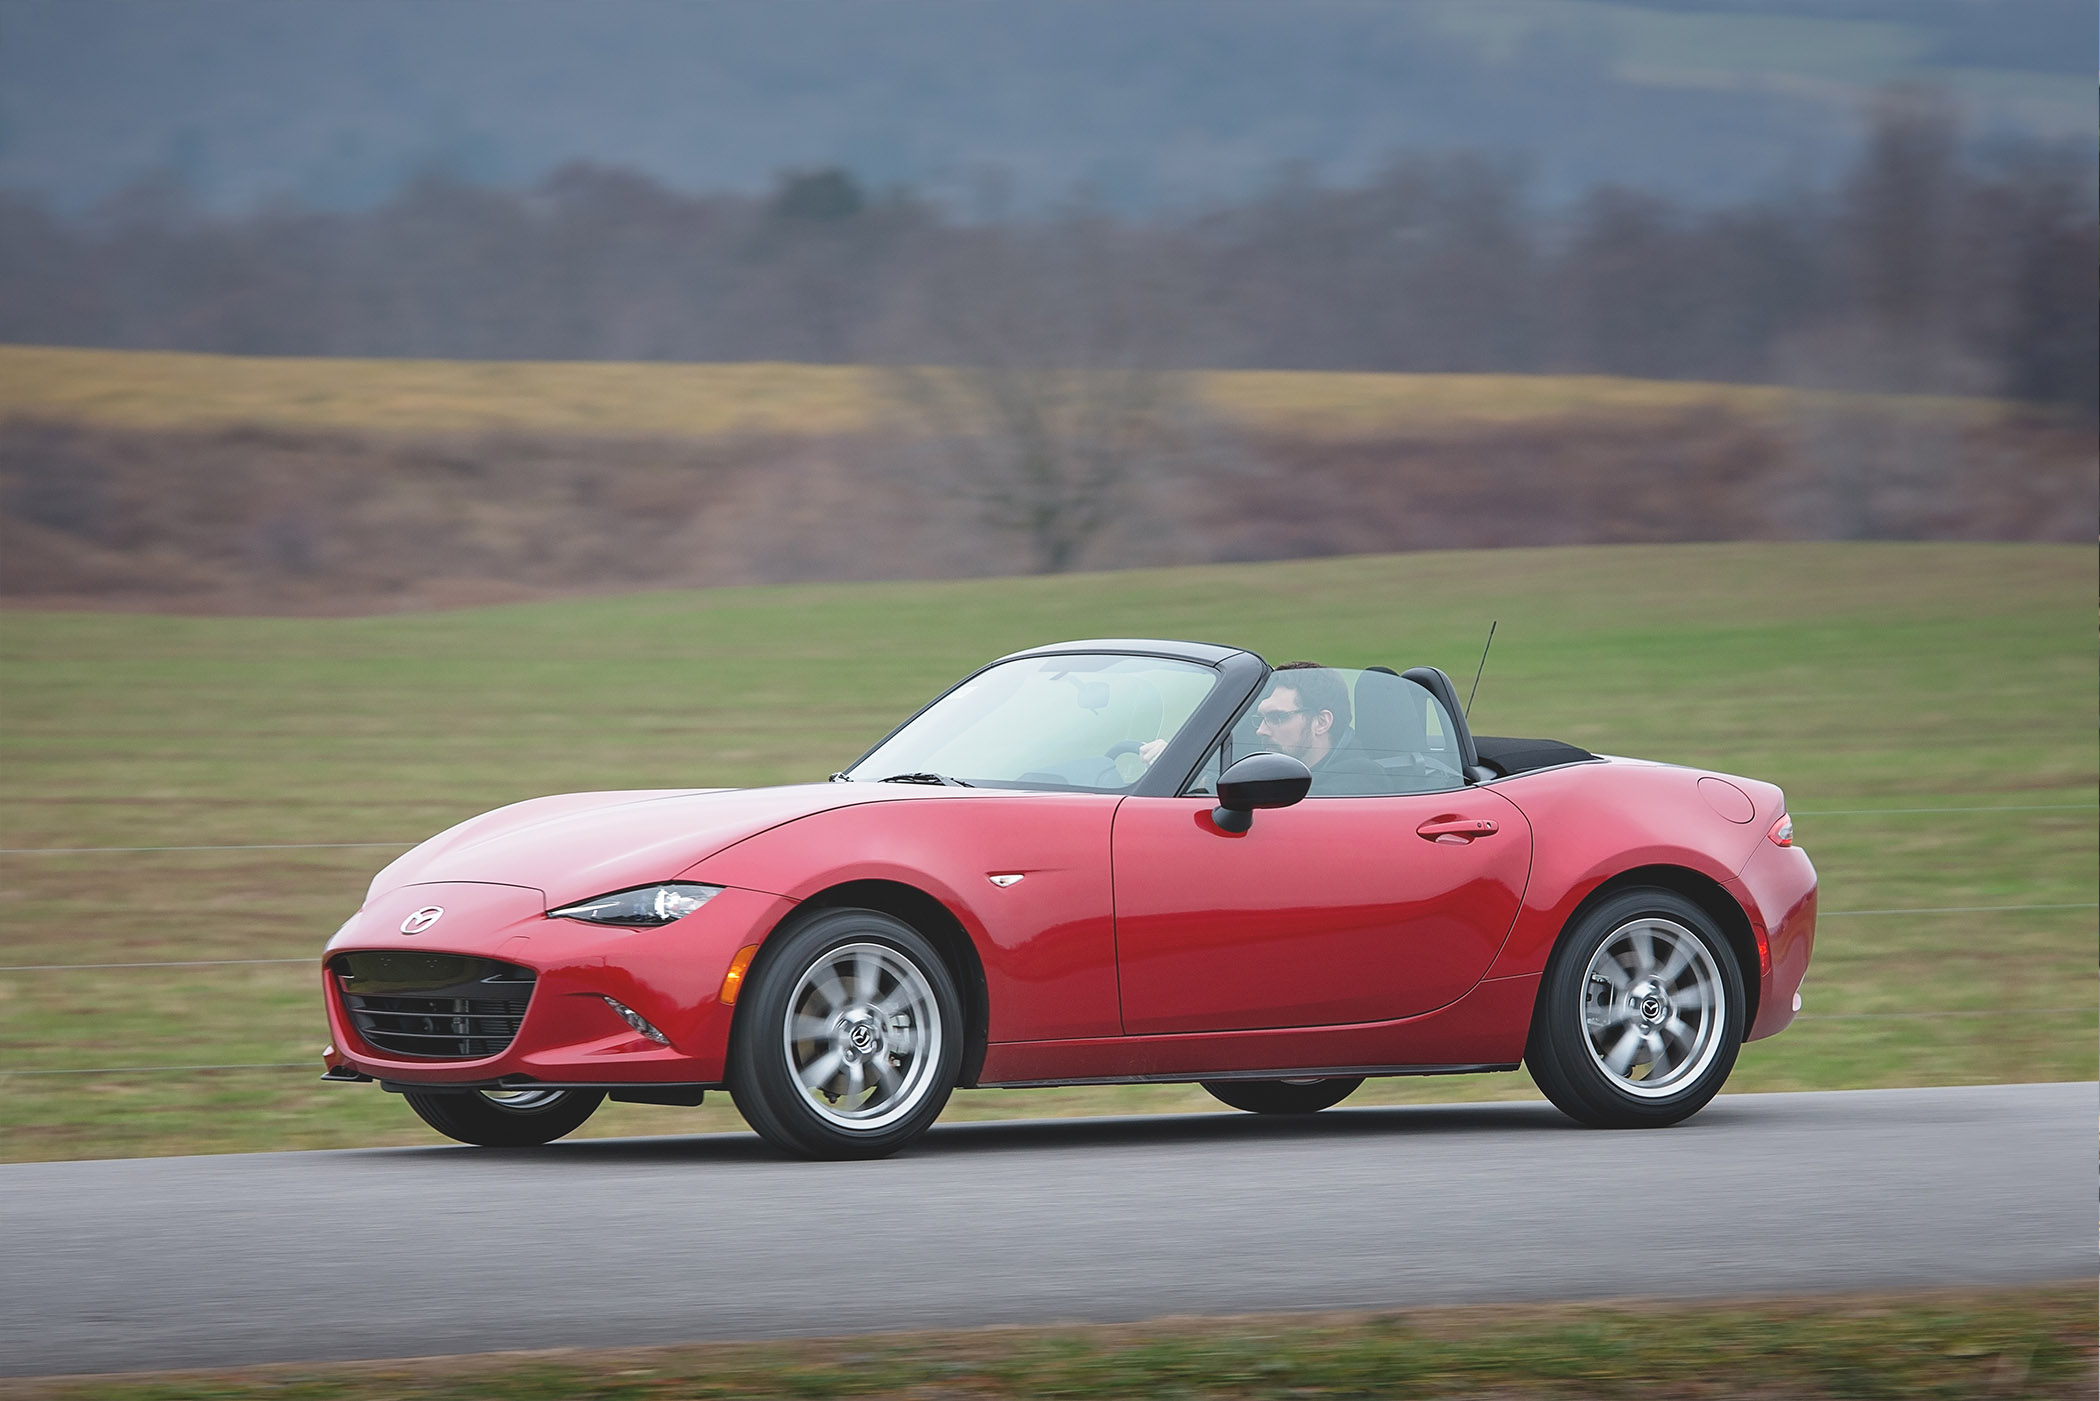 2016 MX-5 Reviewed